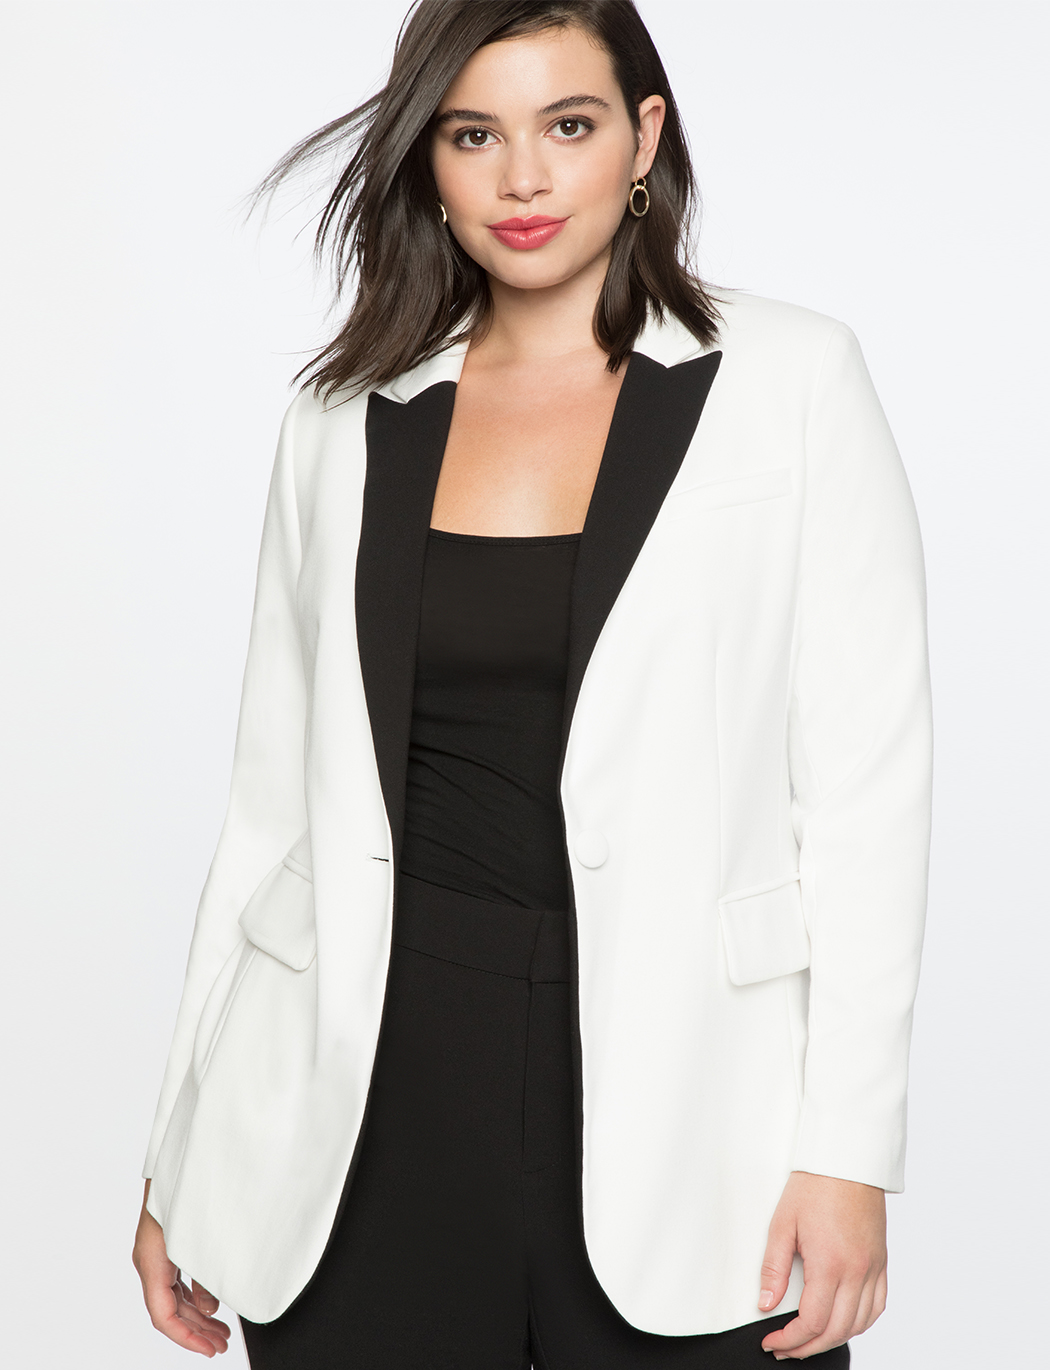 7b43989bbd6 Long Tuxedo Jacket | Women's Plus Size Coats + Jackets | ELOQUII